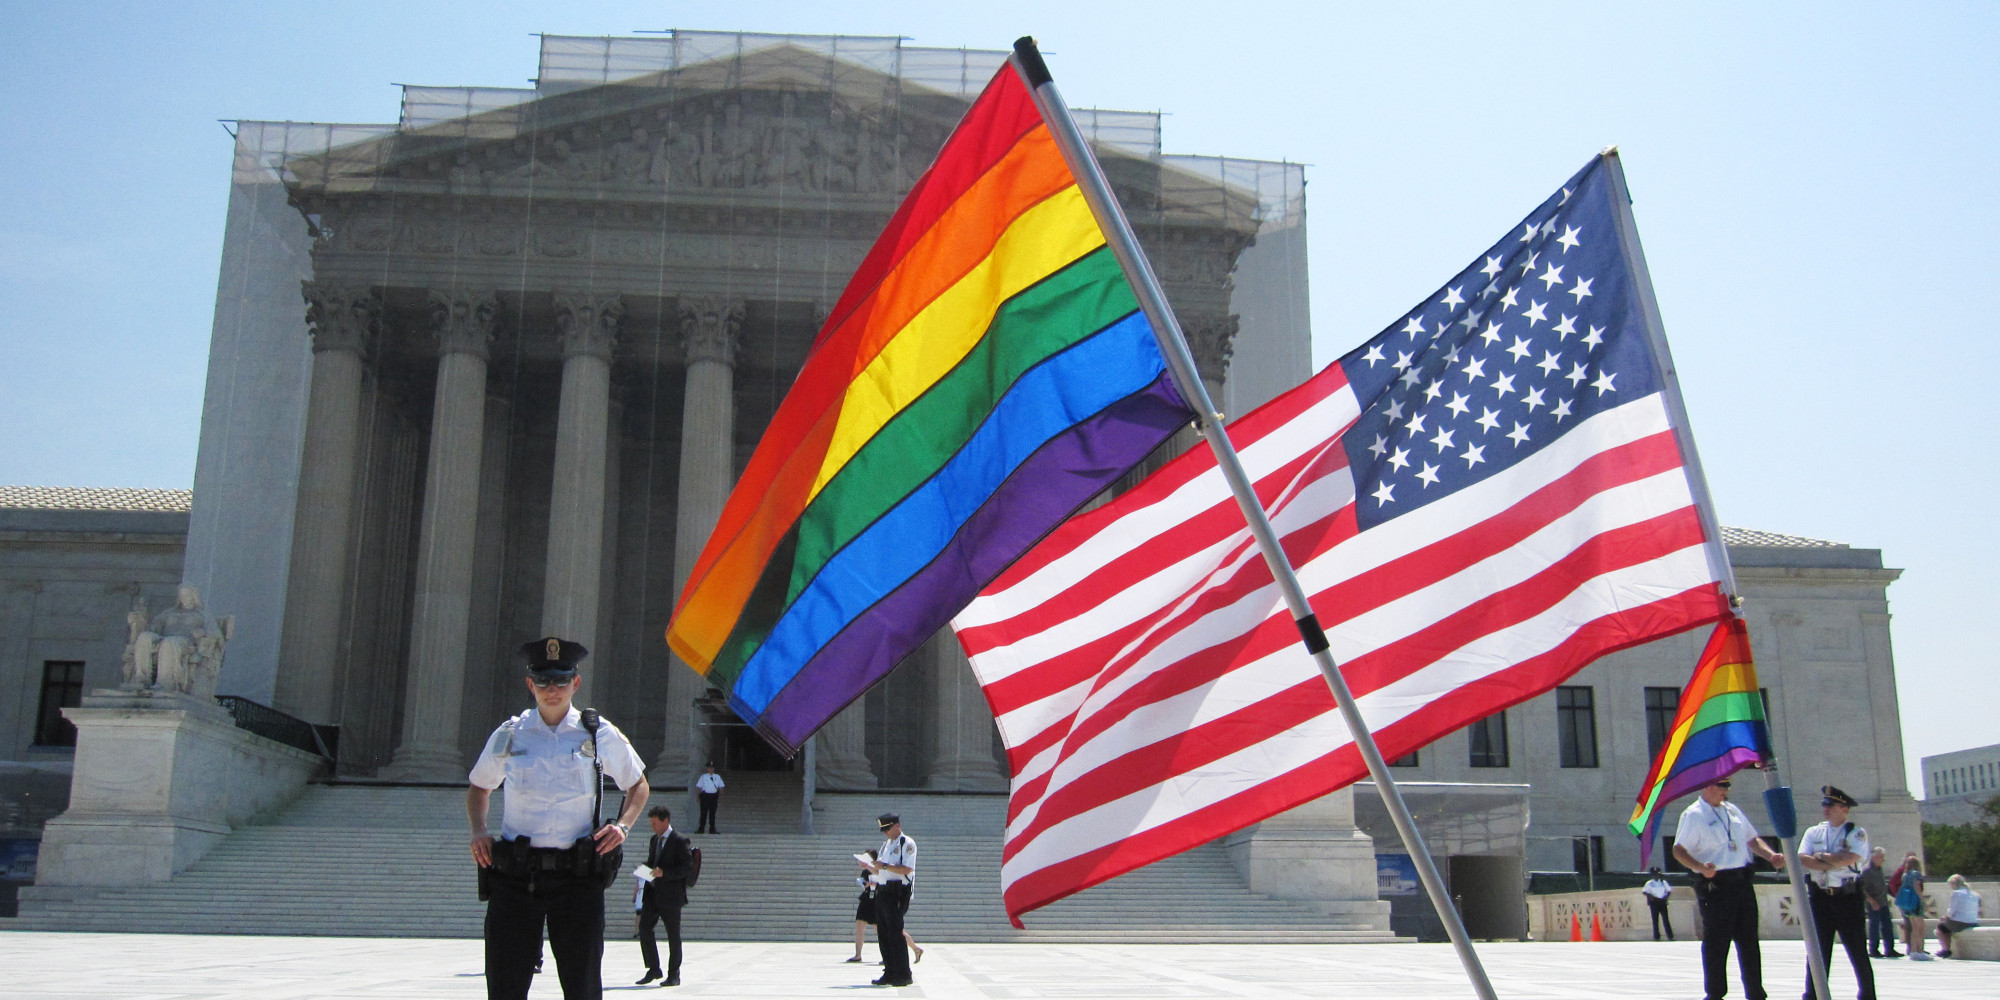 gay marriage in america It was possible for the justices to rule that it's unconstitutional to deny gay couples all of in legalizing gay marriage gay marriage in america.